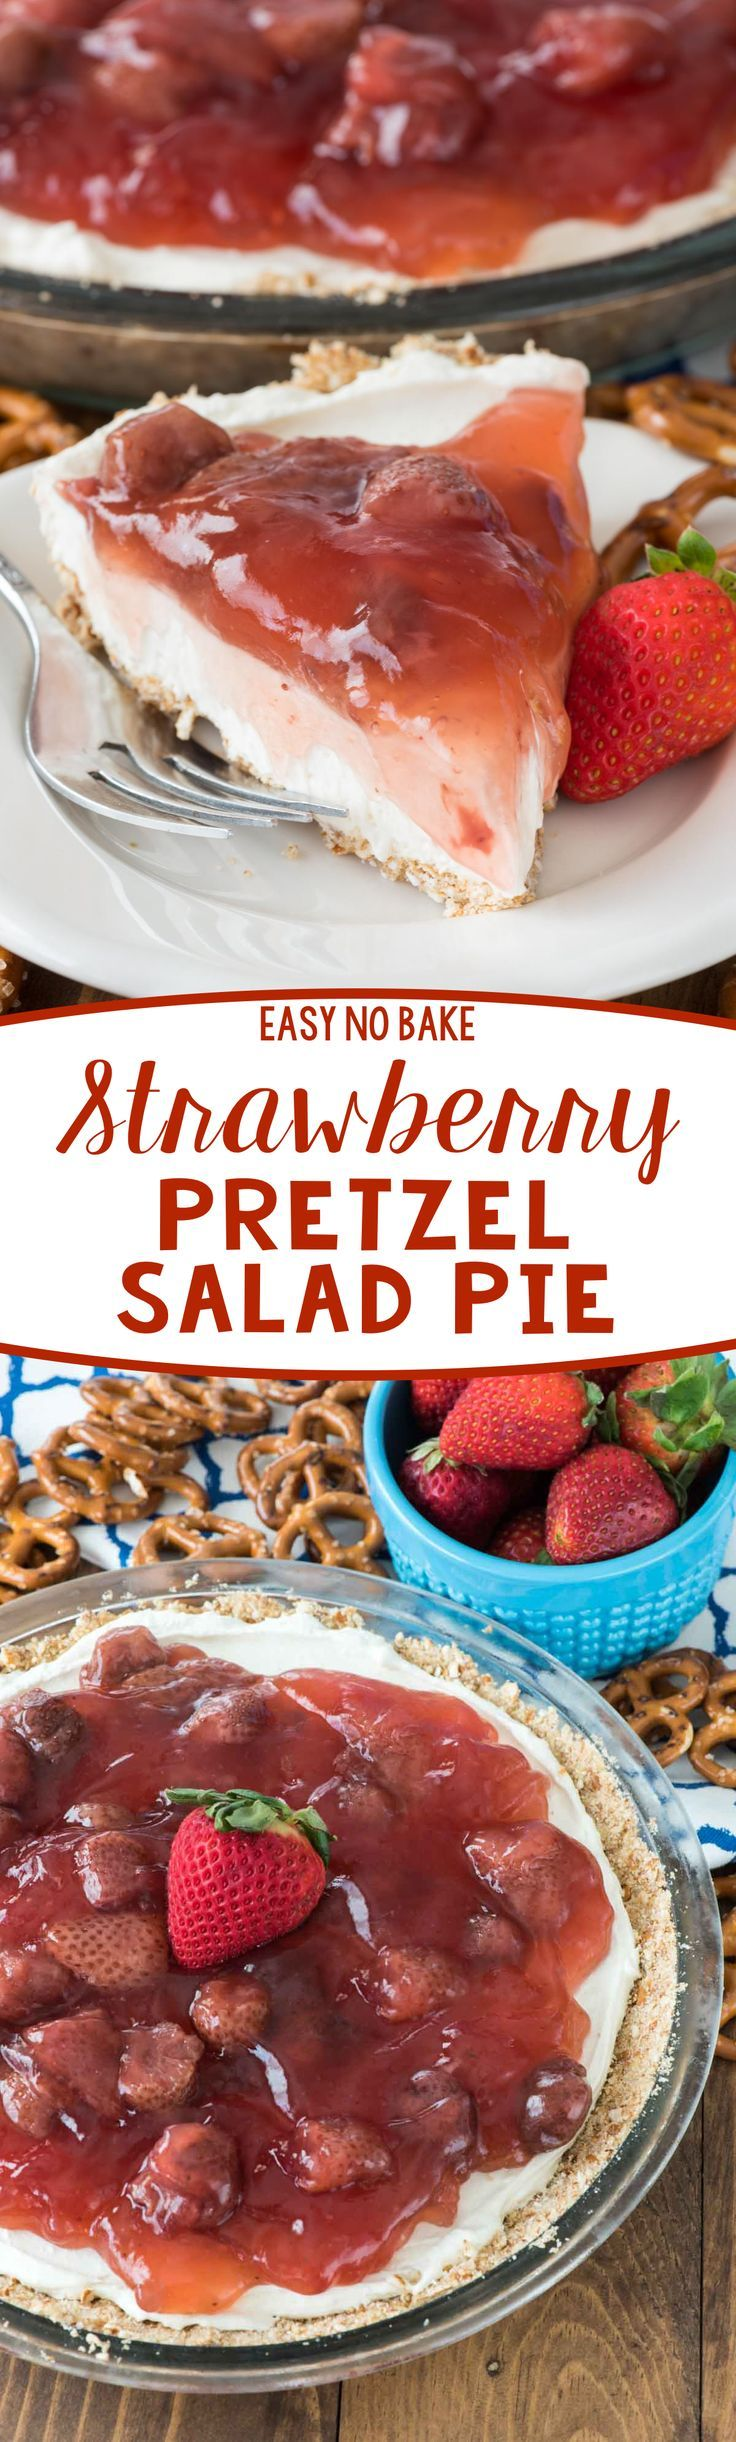 No Bake Strawberry Pretzel Salad Pie - this easy recipe has a pretzel crust, creamy cheesecake filling, and strawberry pie filling on top! It's great for a summer party!